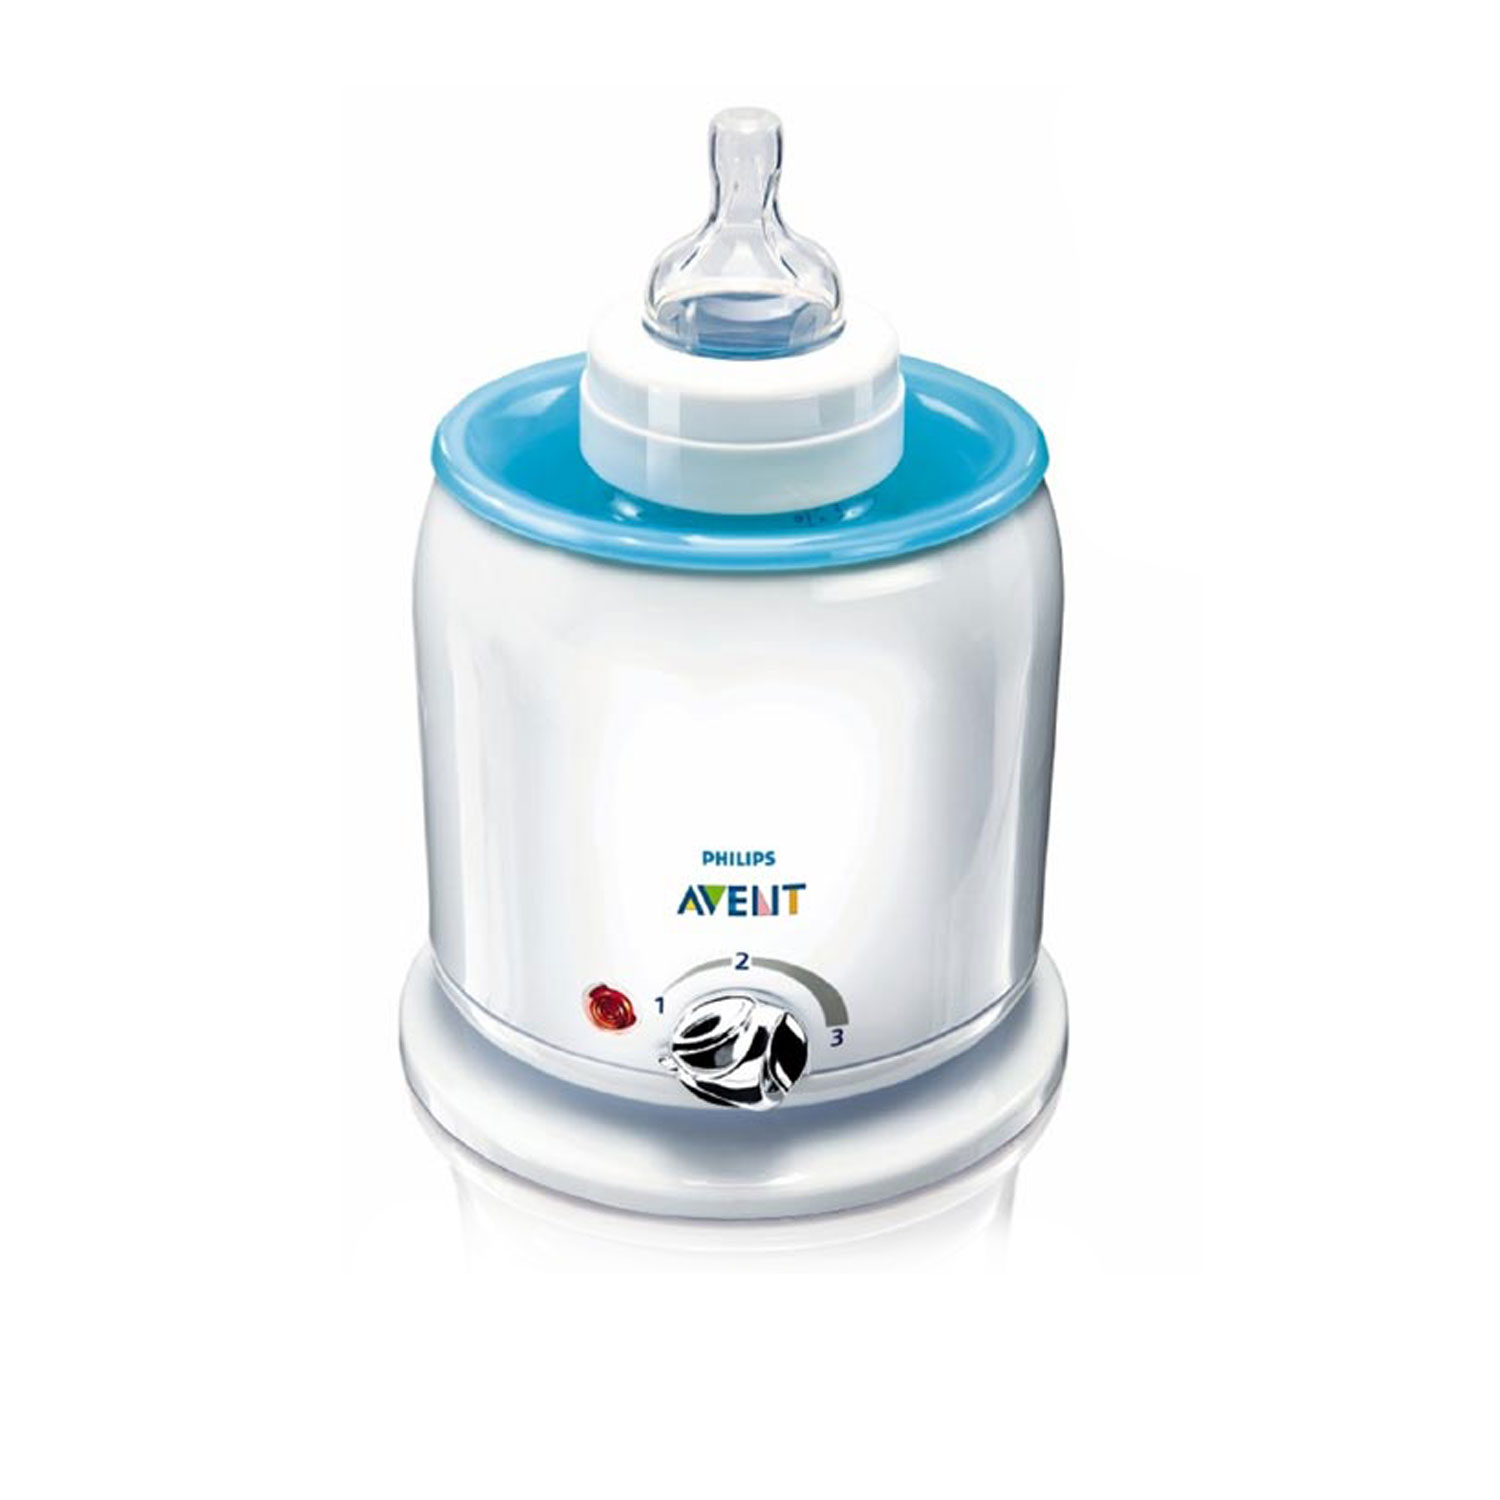 Electric Bottle Warmer ~ Little miss perfectionist avent electric bottle warmer review